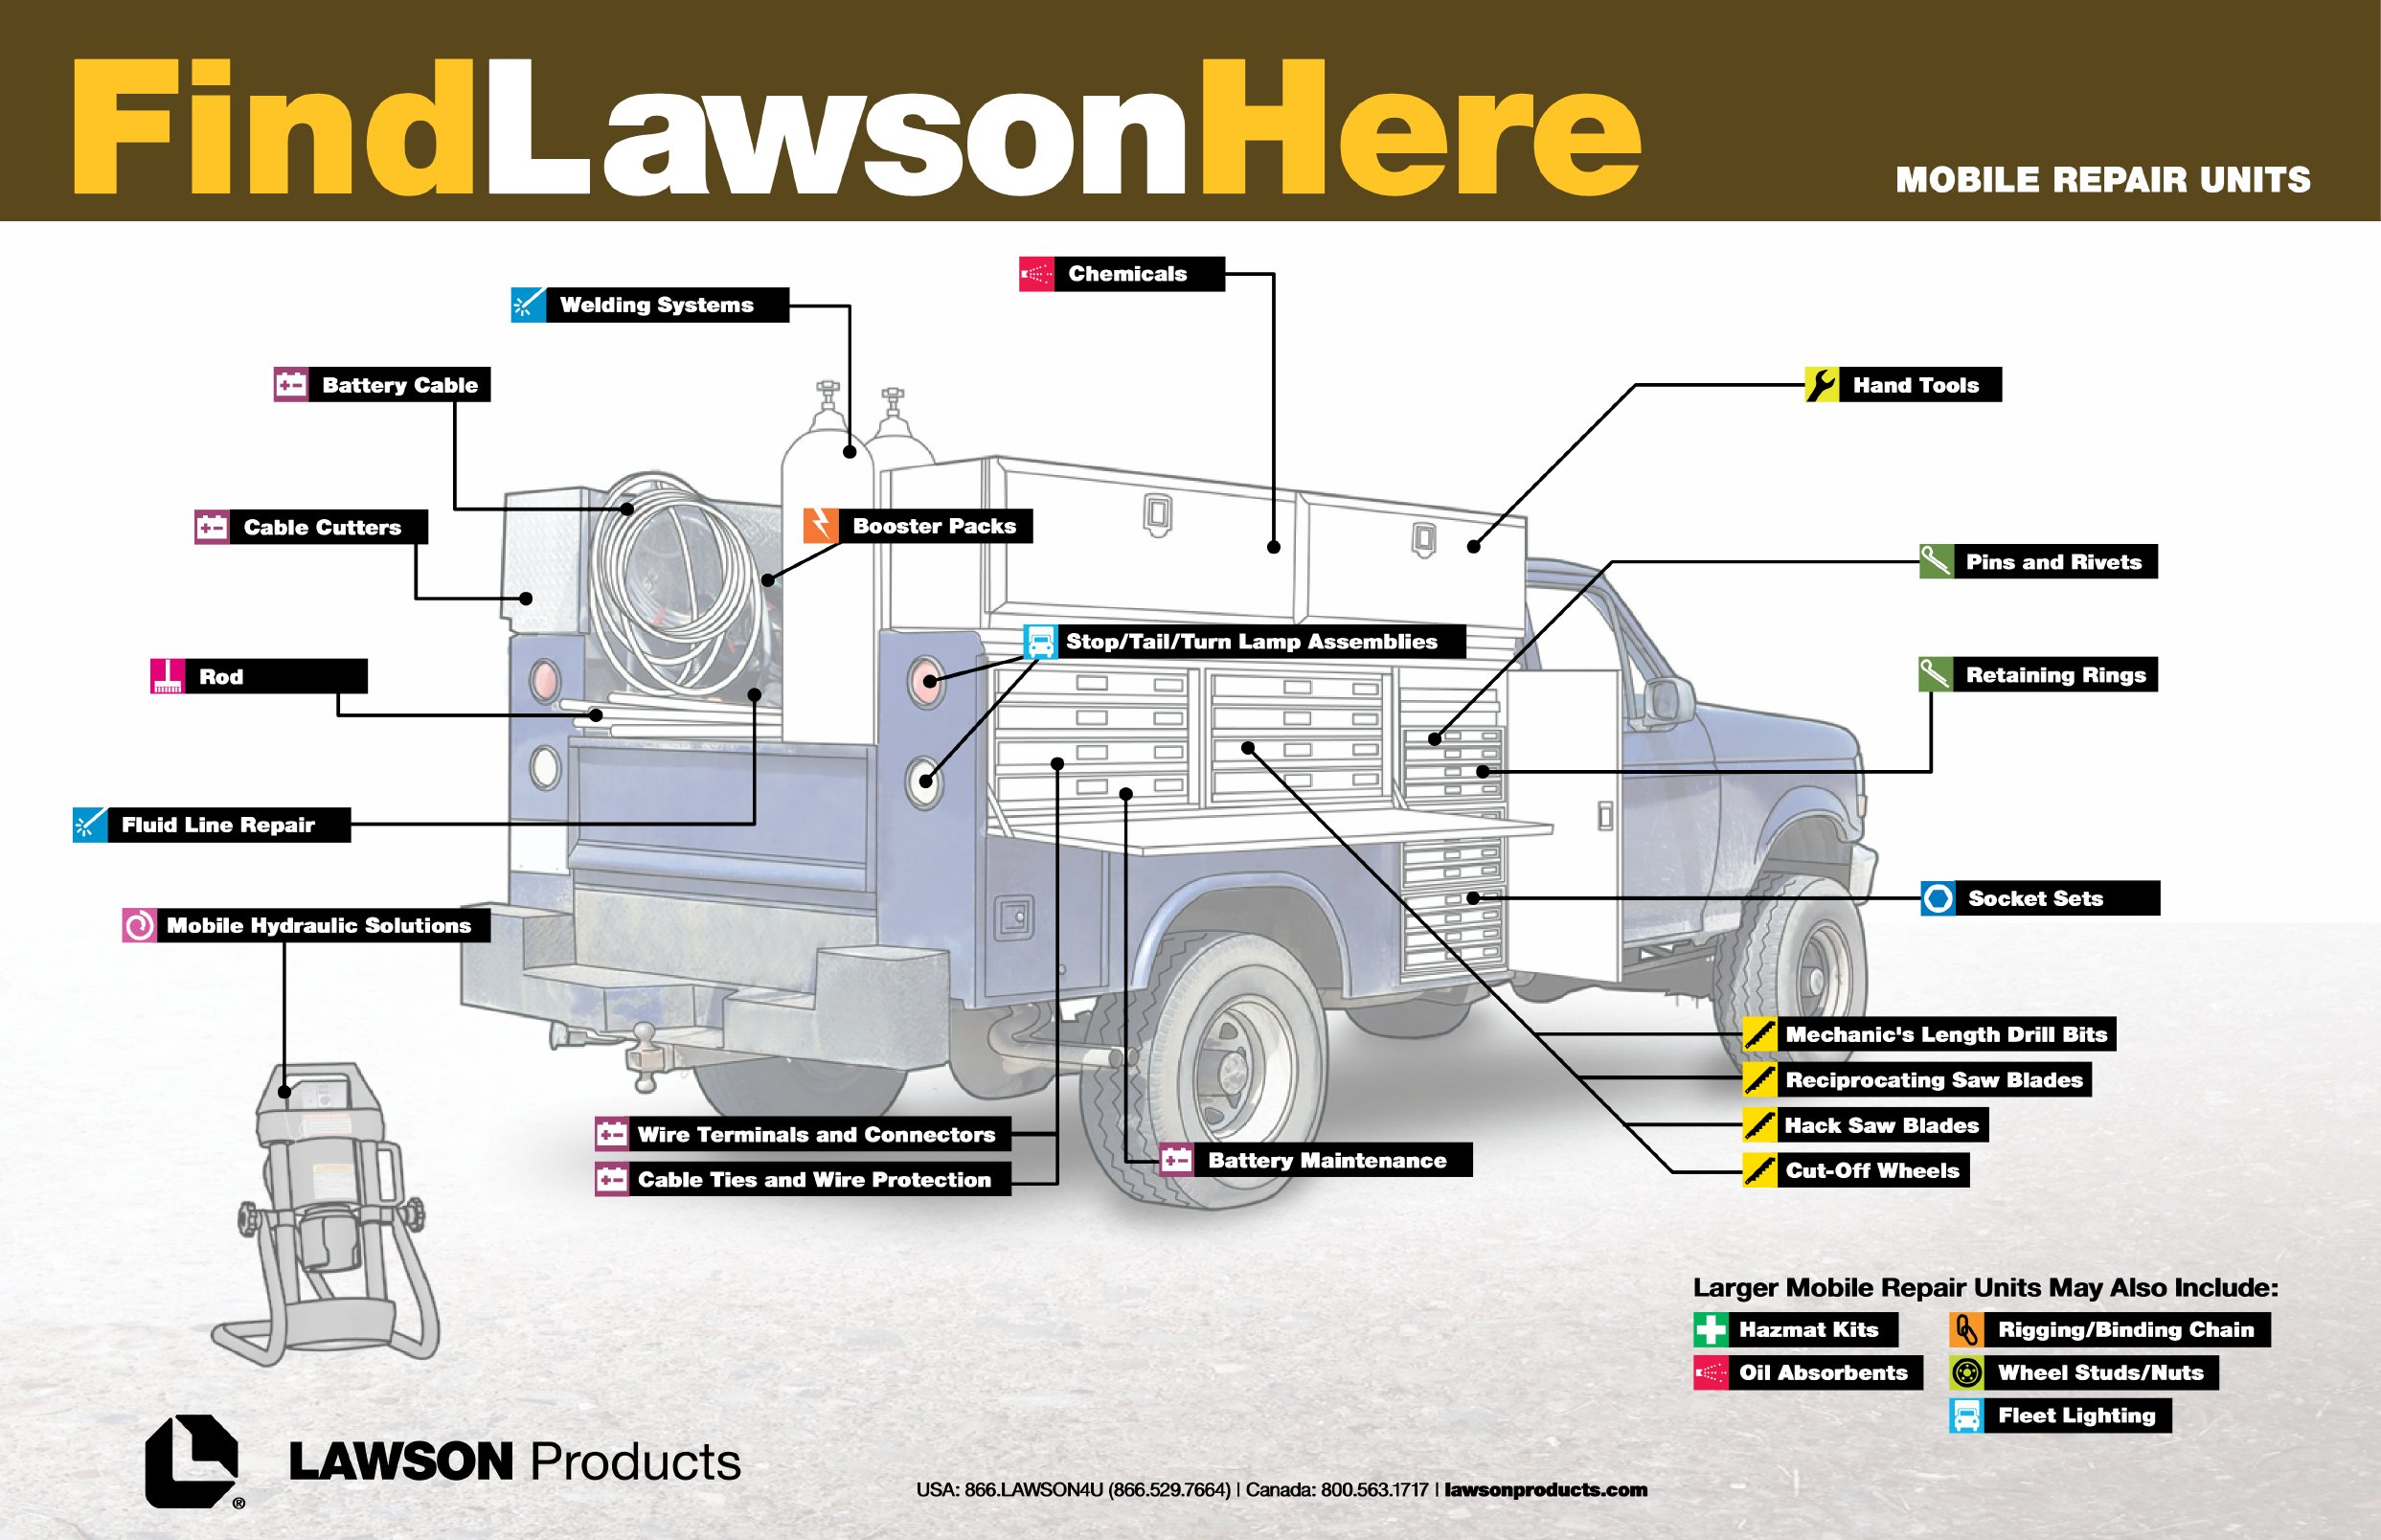 Find Lawson Here - Page 15 Mobile Repair Units on